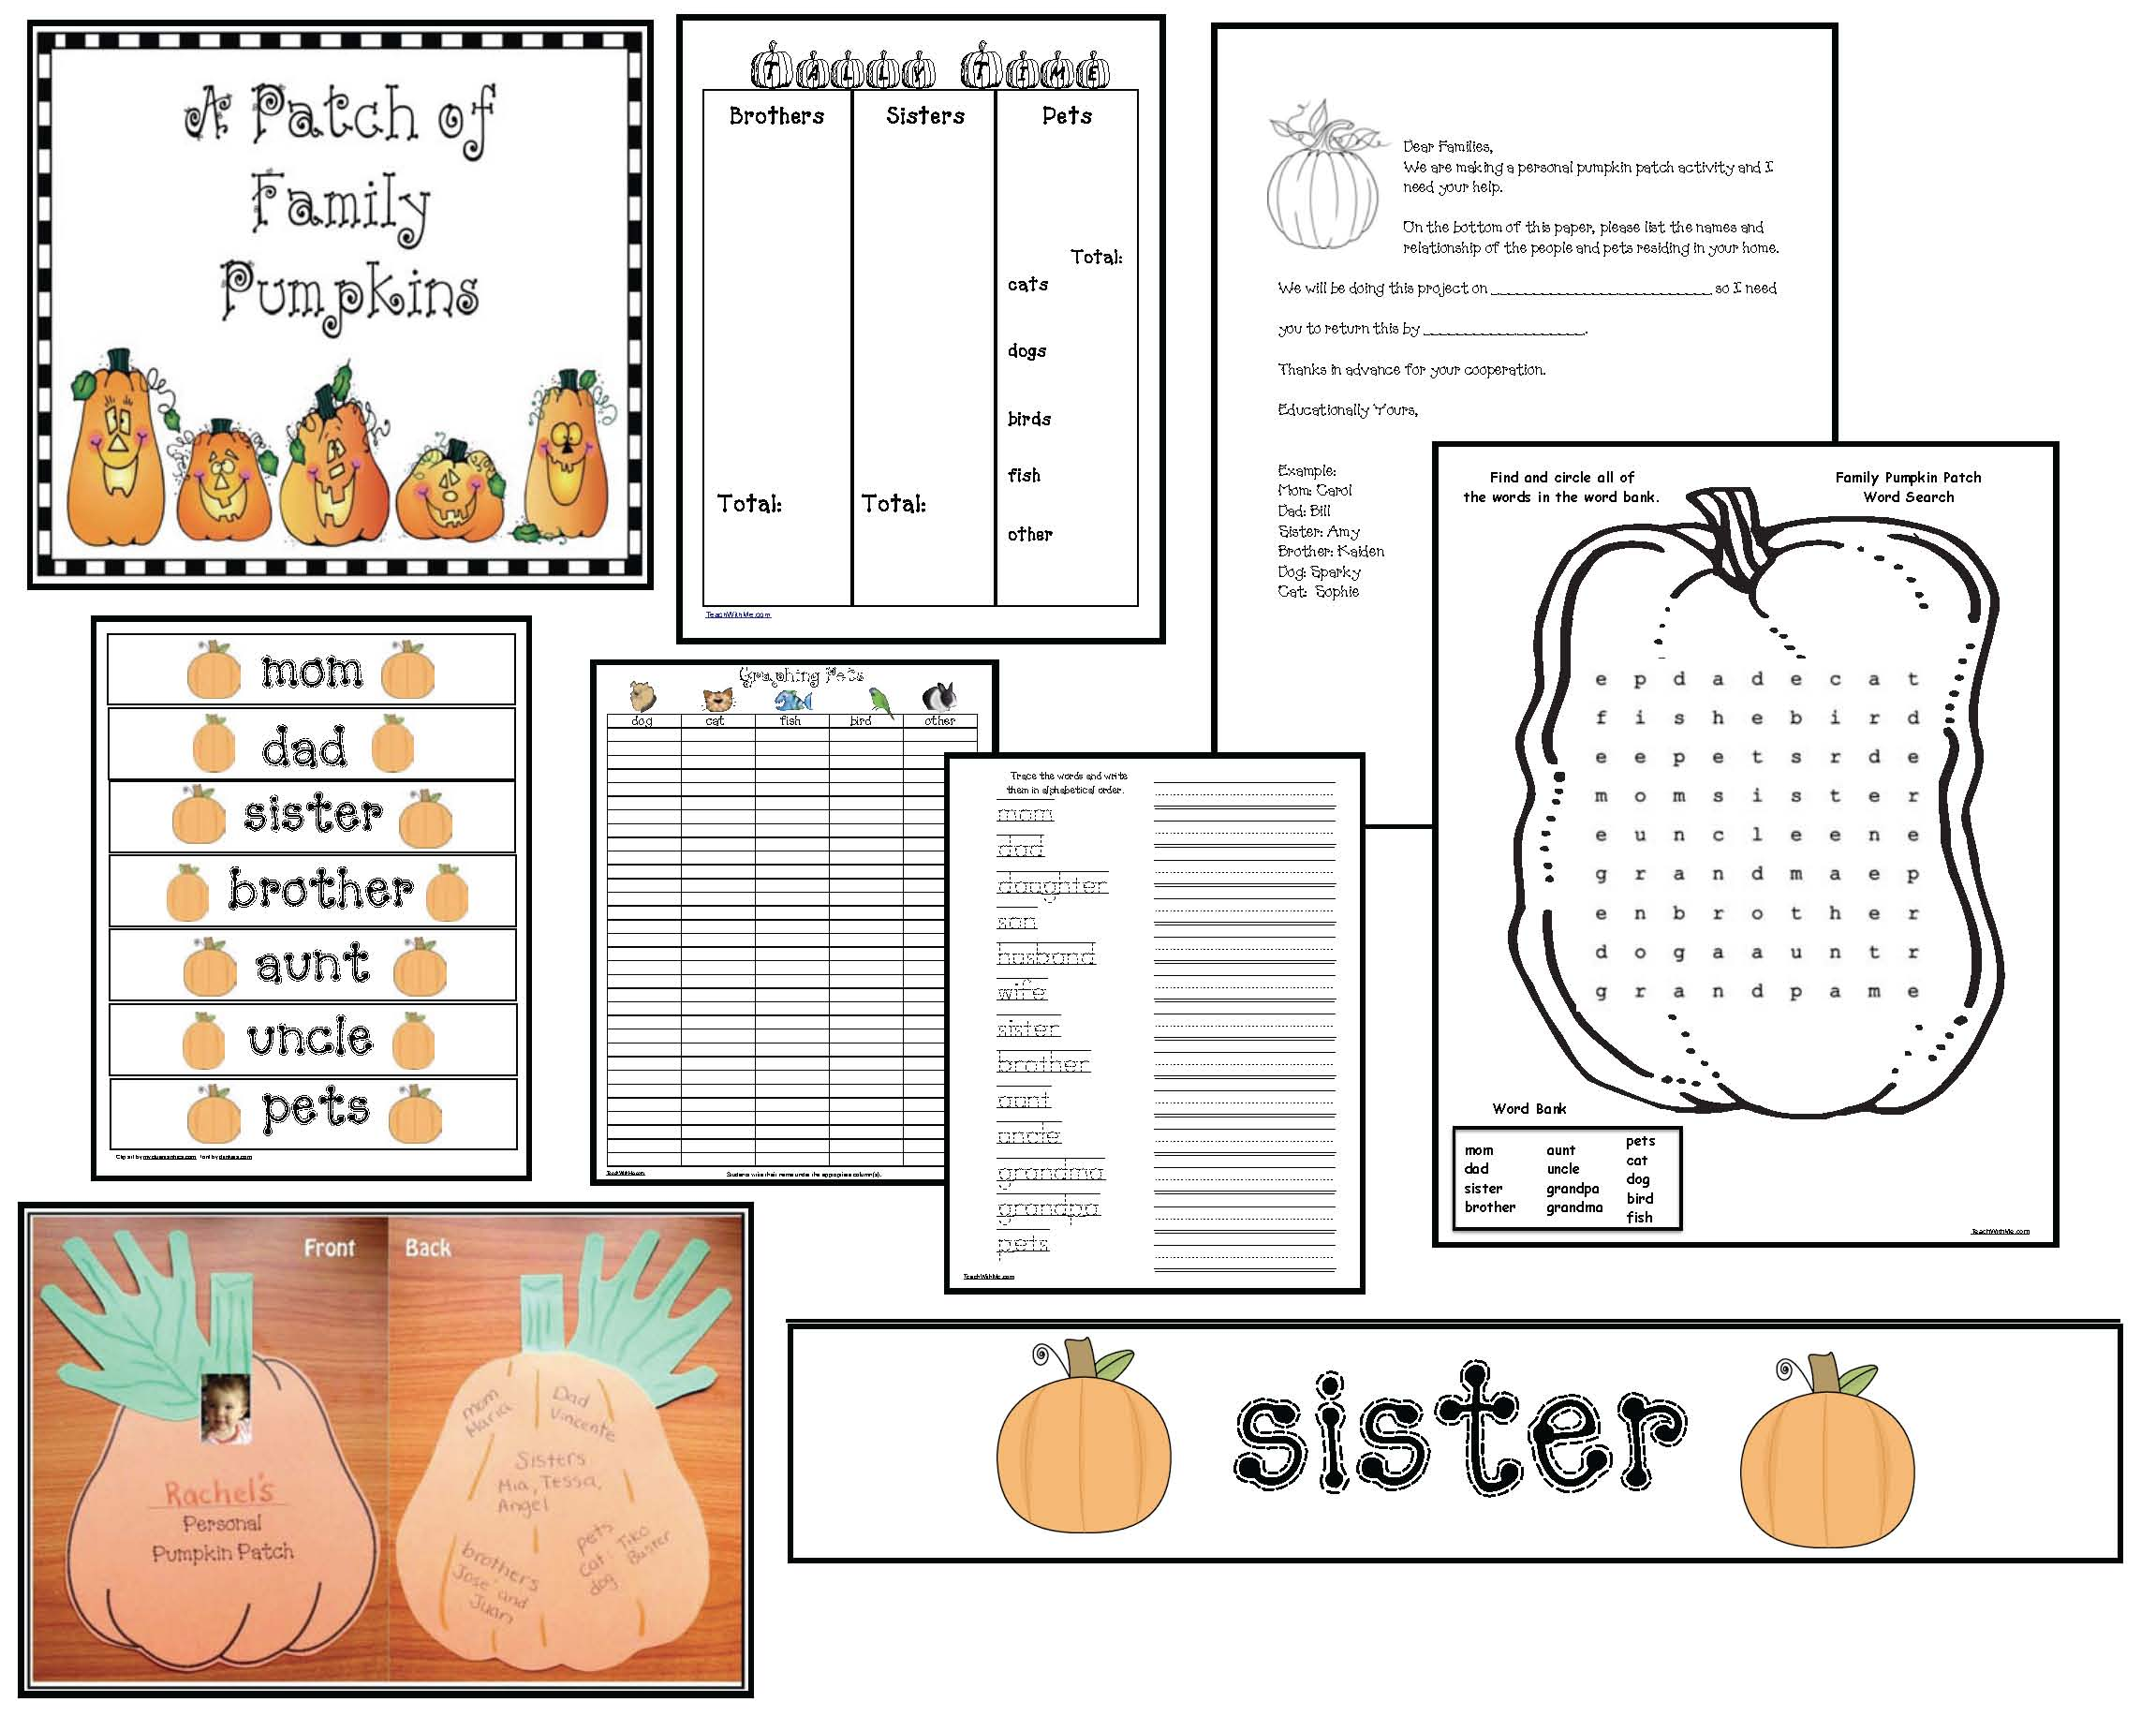 pumpkin activities, pumpkin crafts, fall bulletin board ideas, family pumpkins, pumpkin patch activities, activities for family words